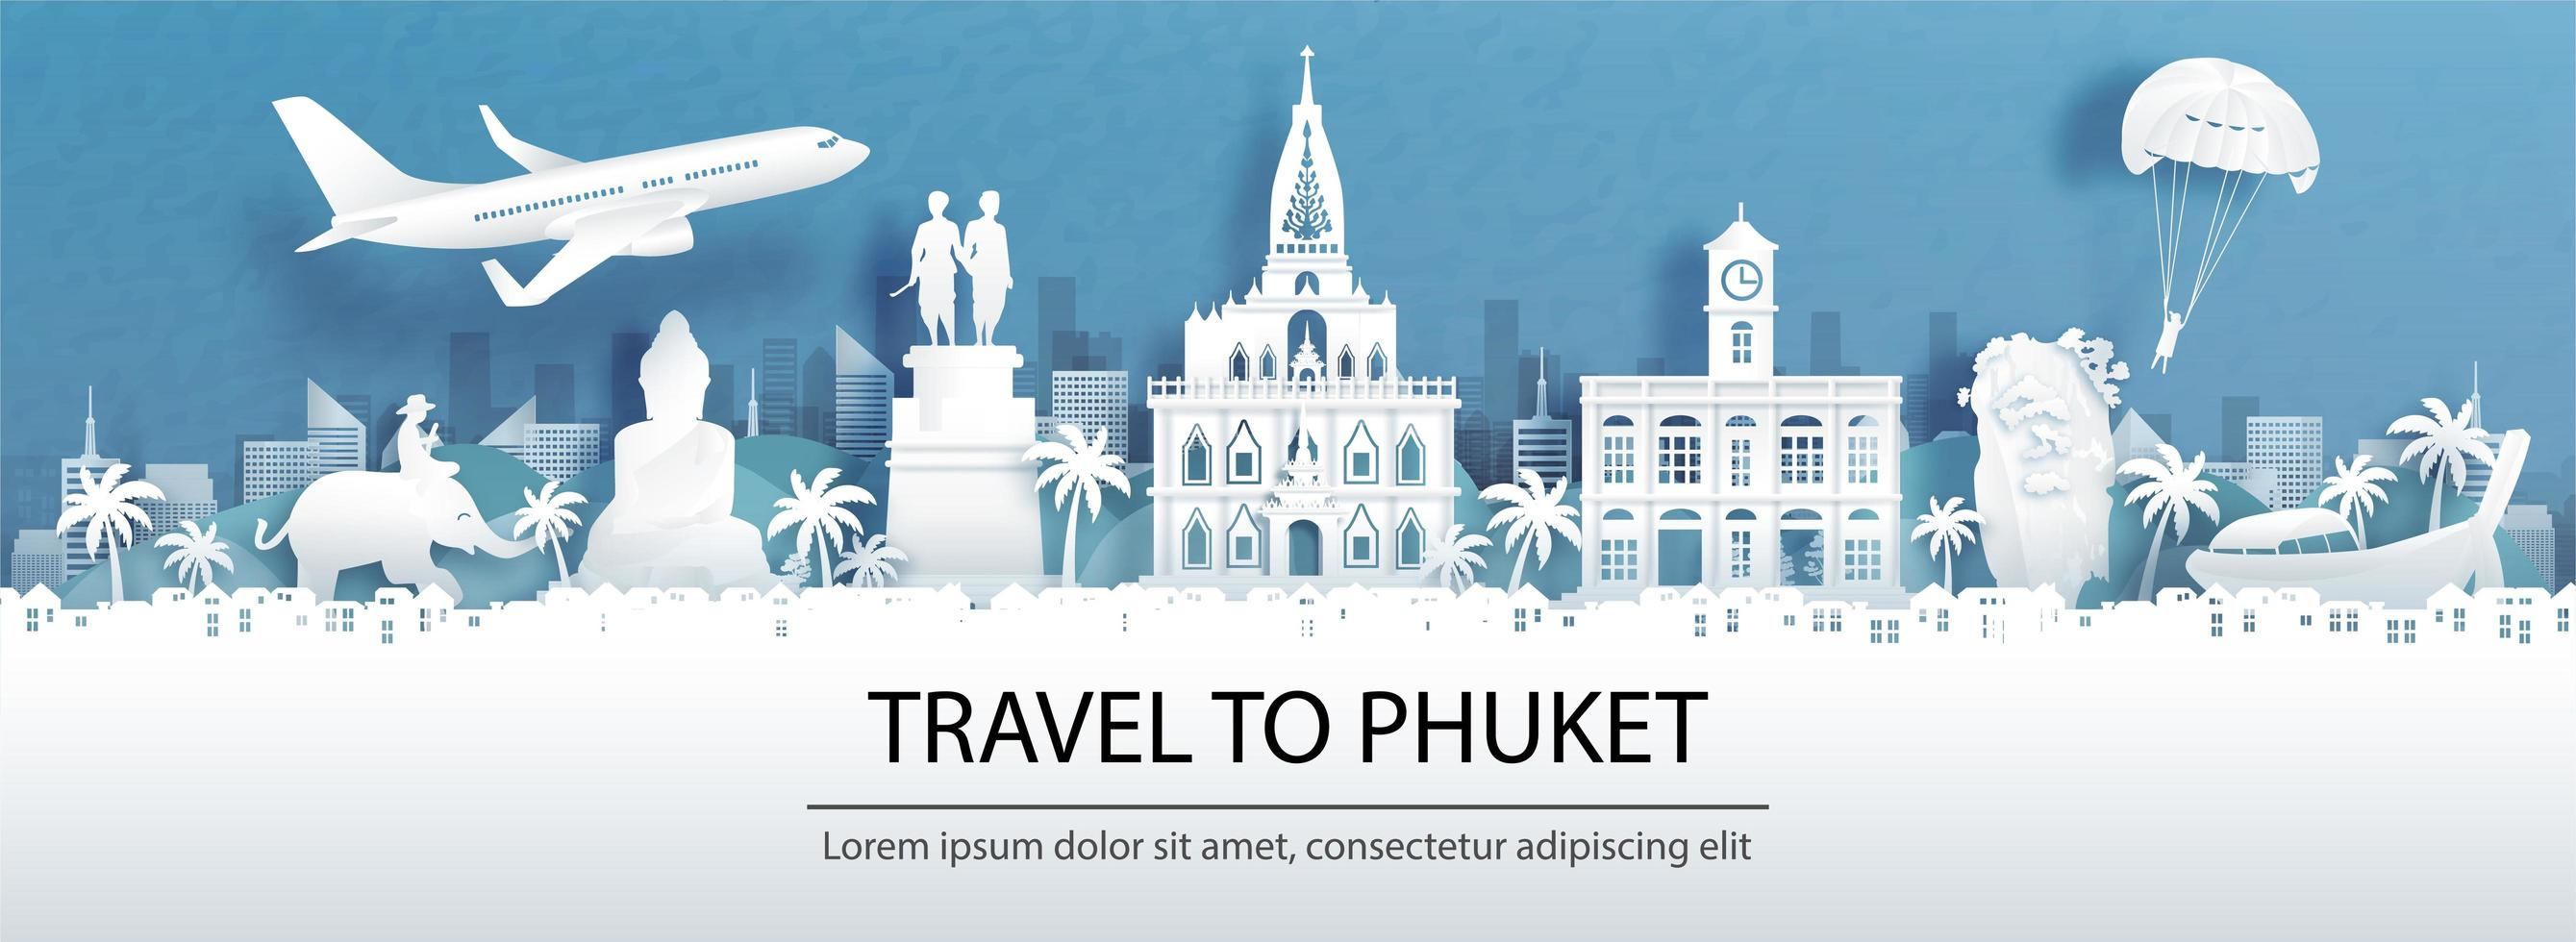 Travel advertisment for Phuket, Thailand with panorama view vector